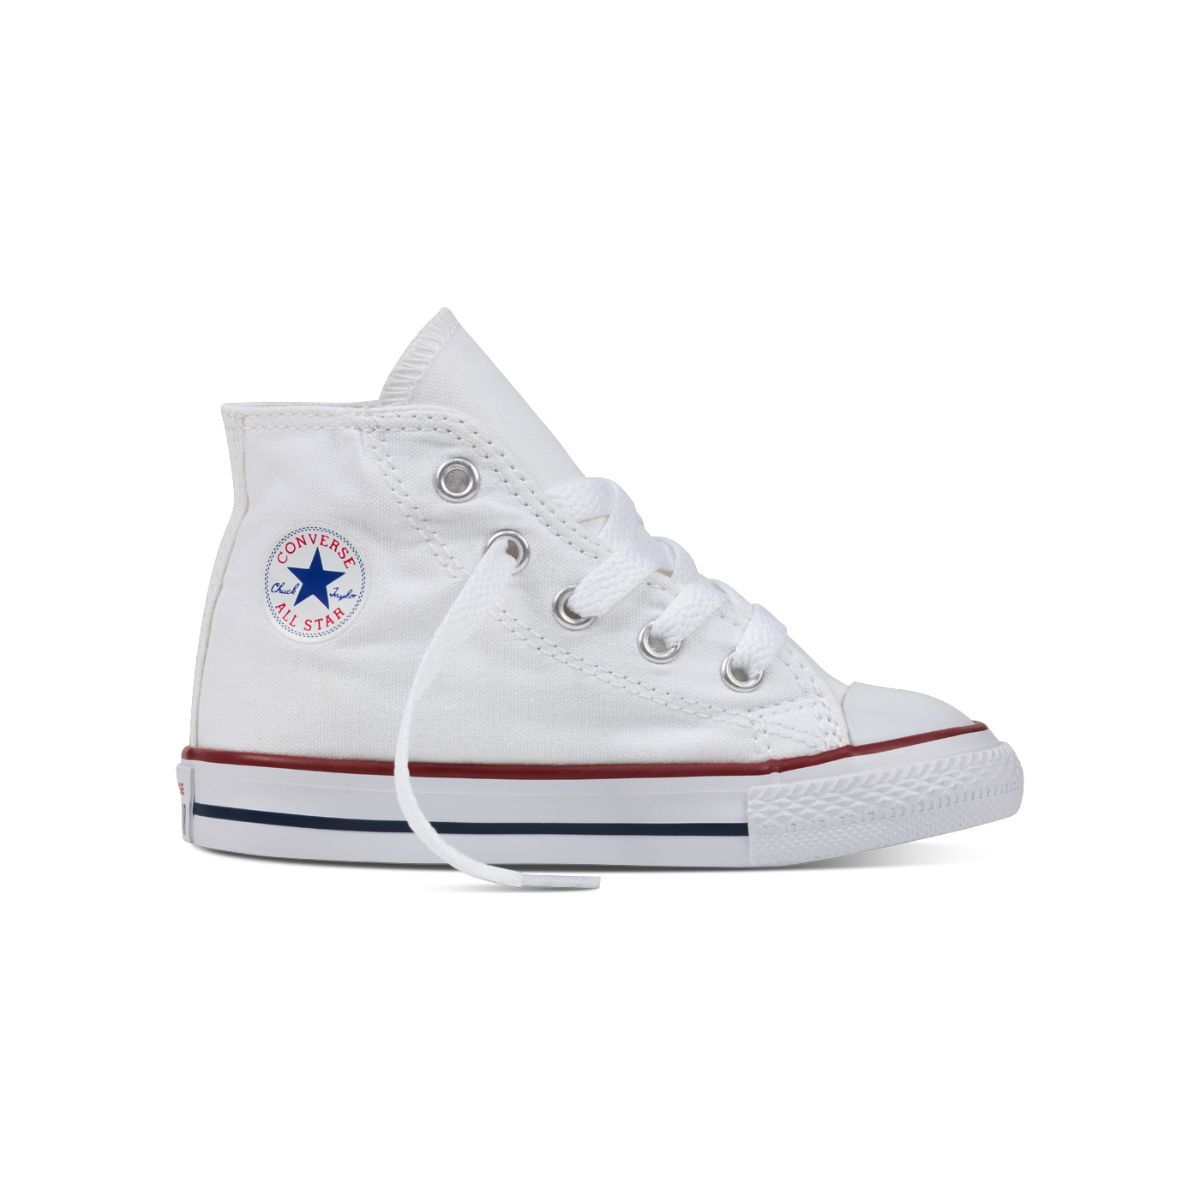 Toddler Chuck Taylor All Star White High Top